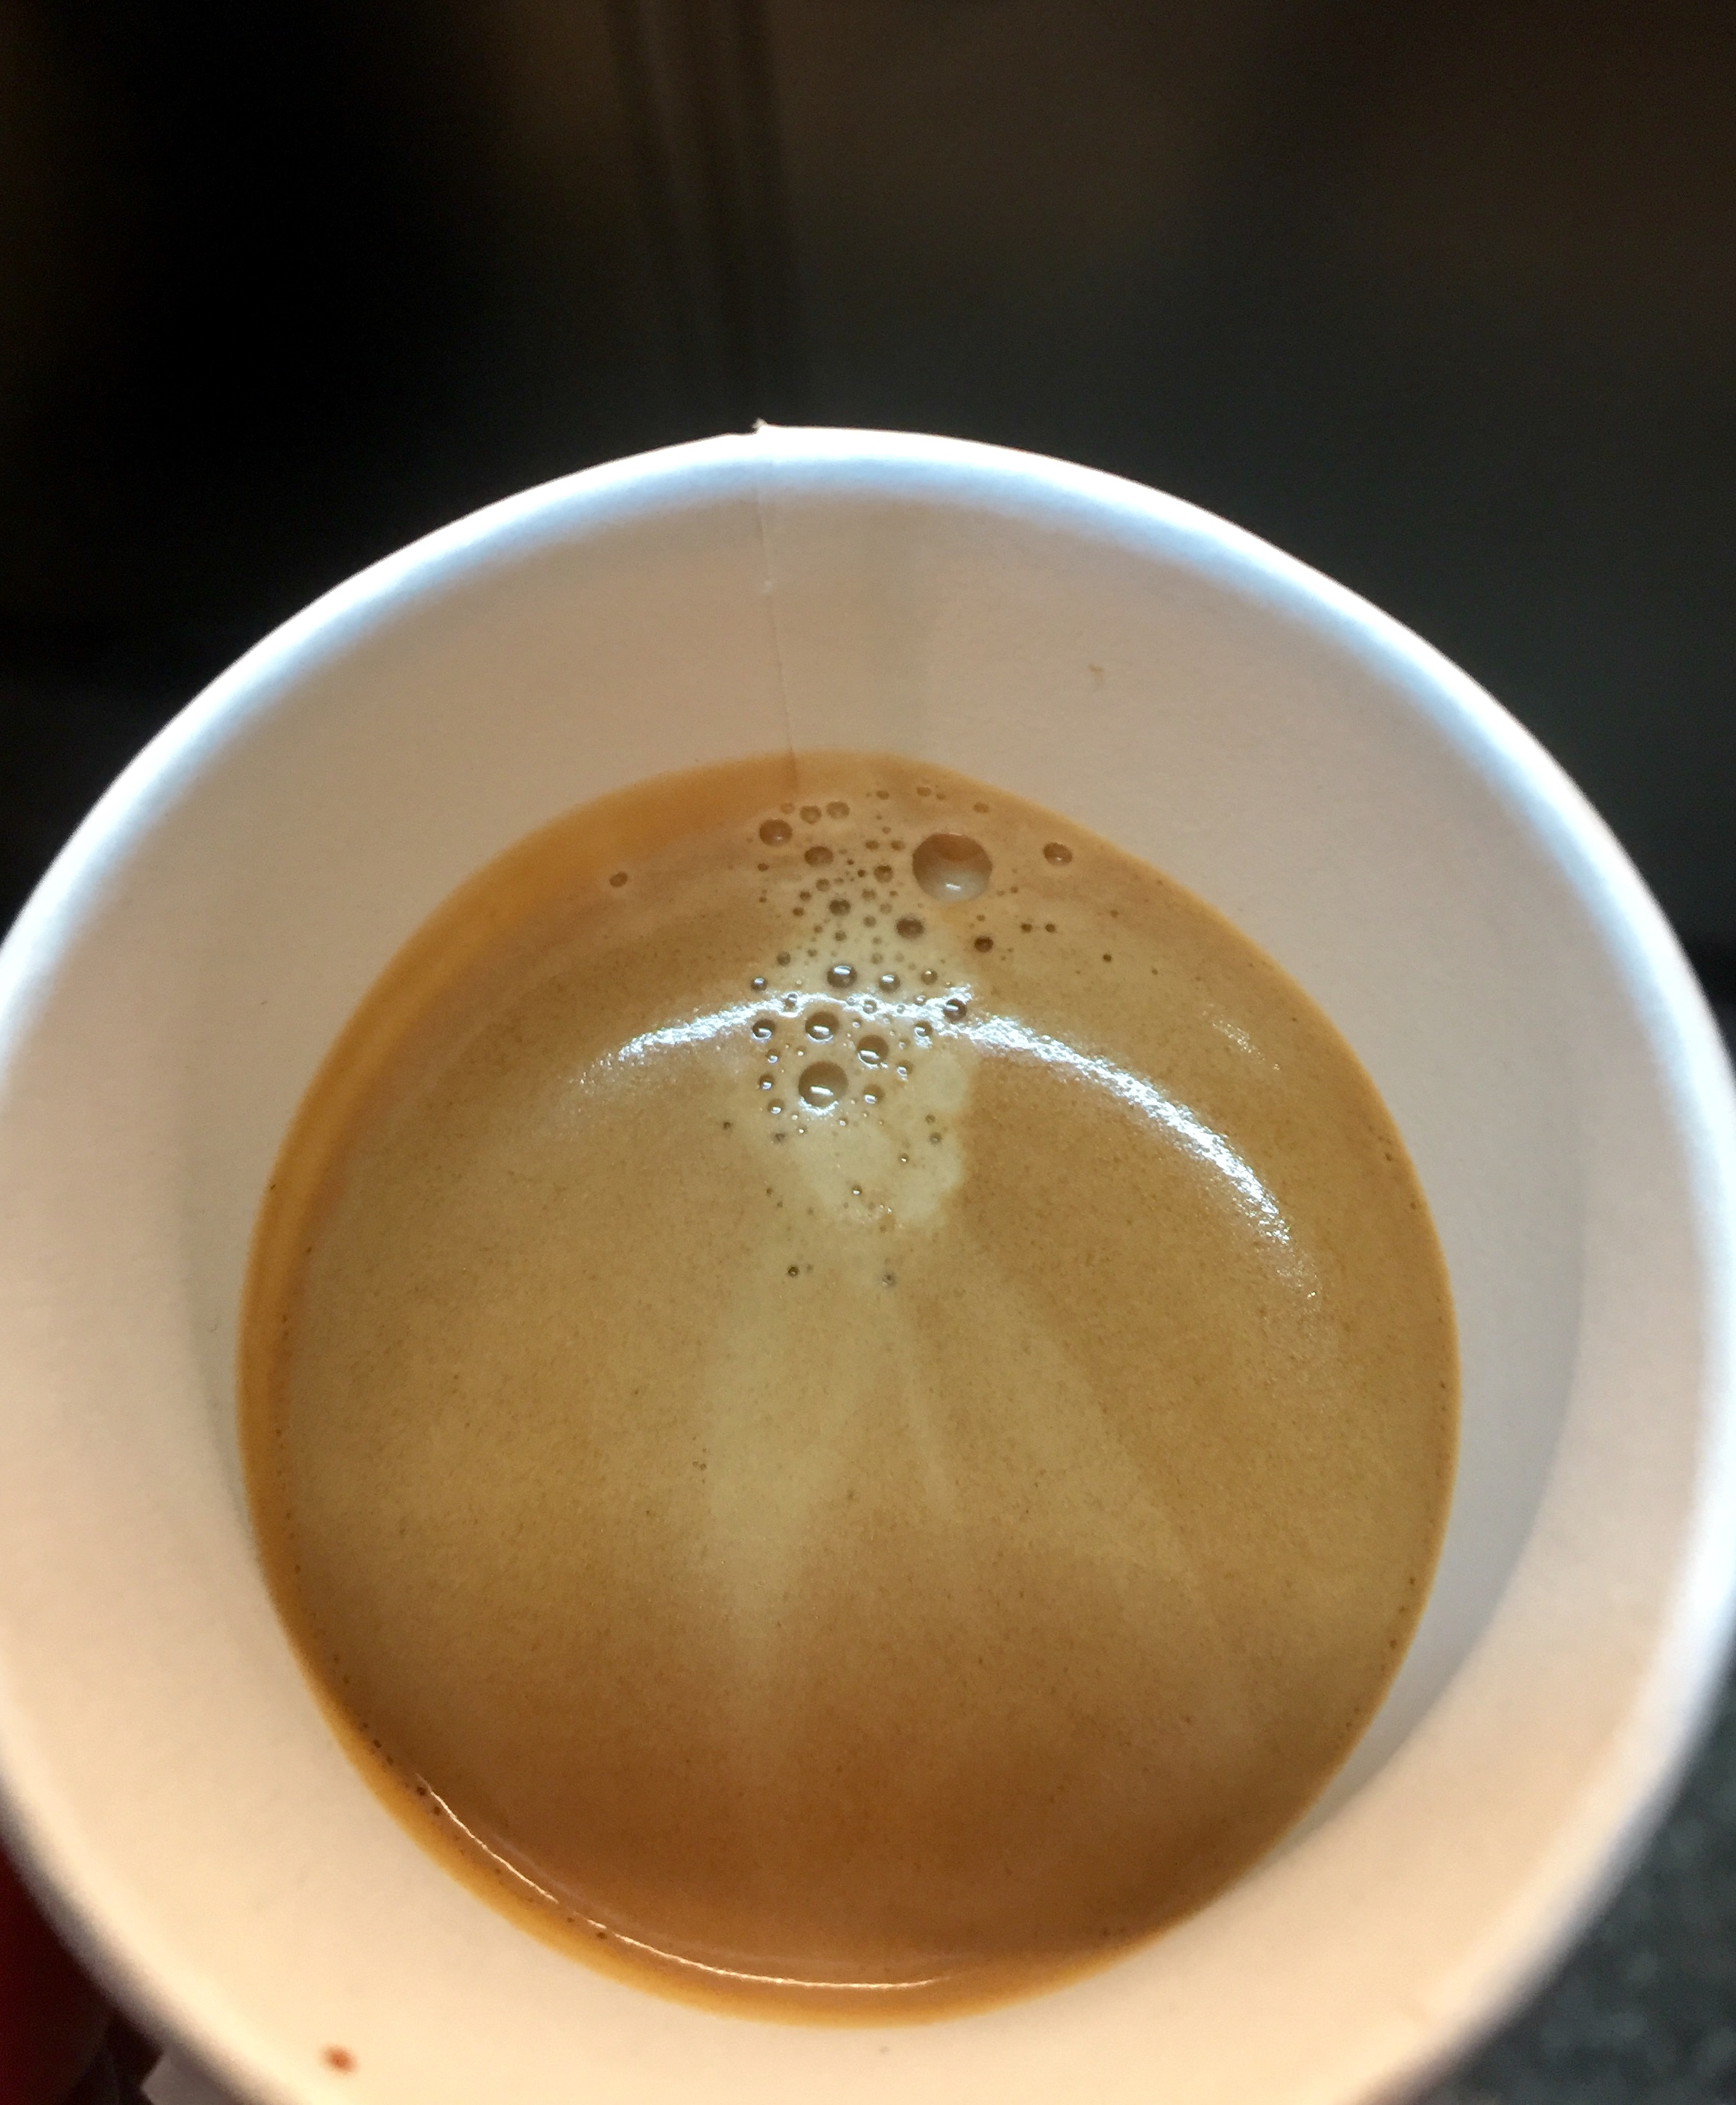 Look at that crema!